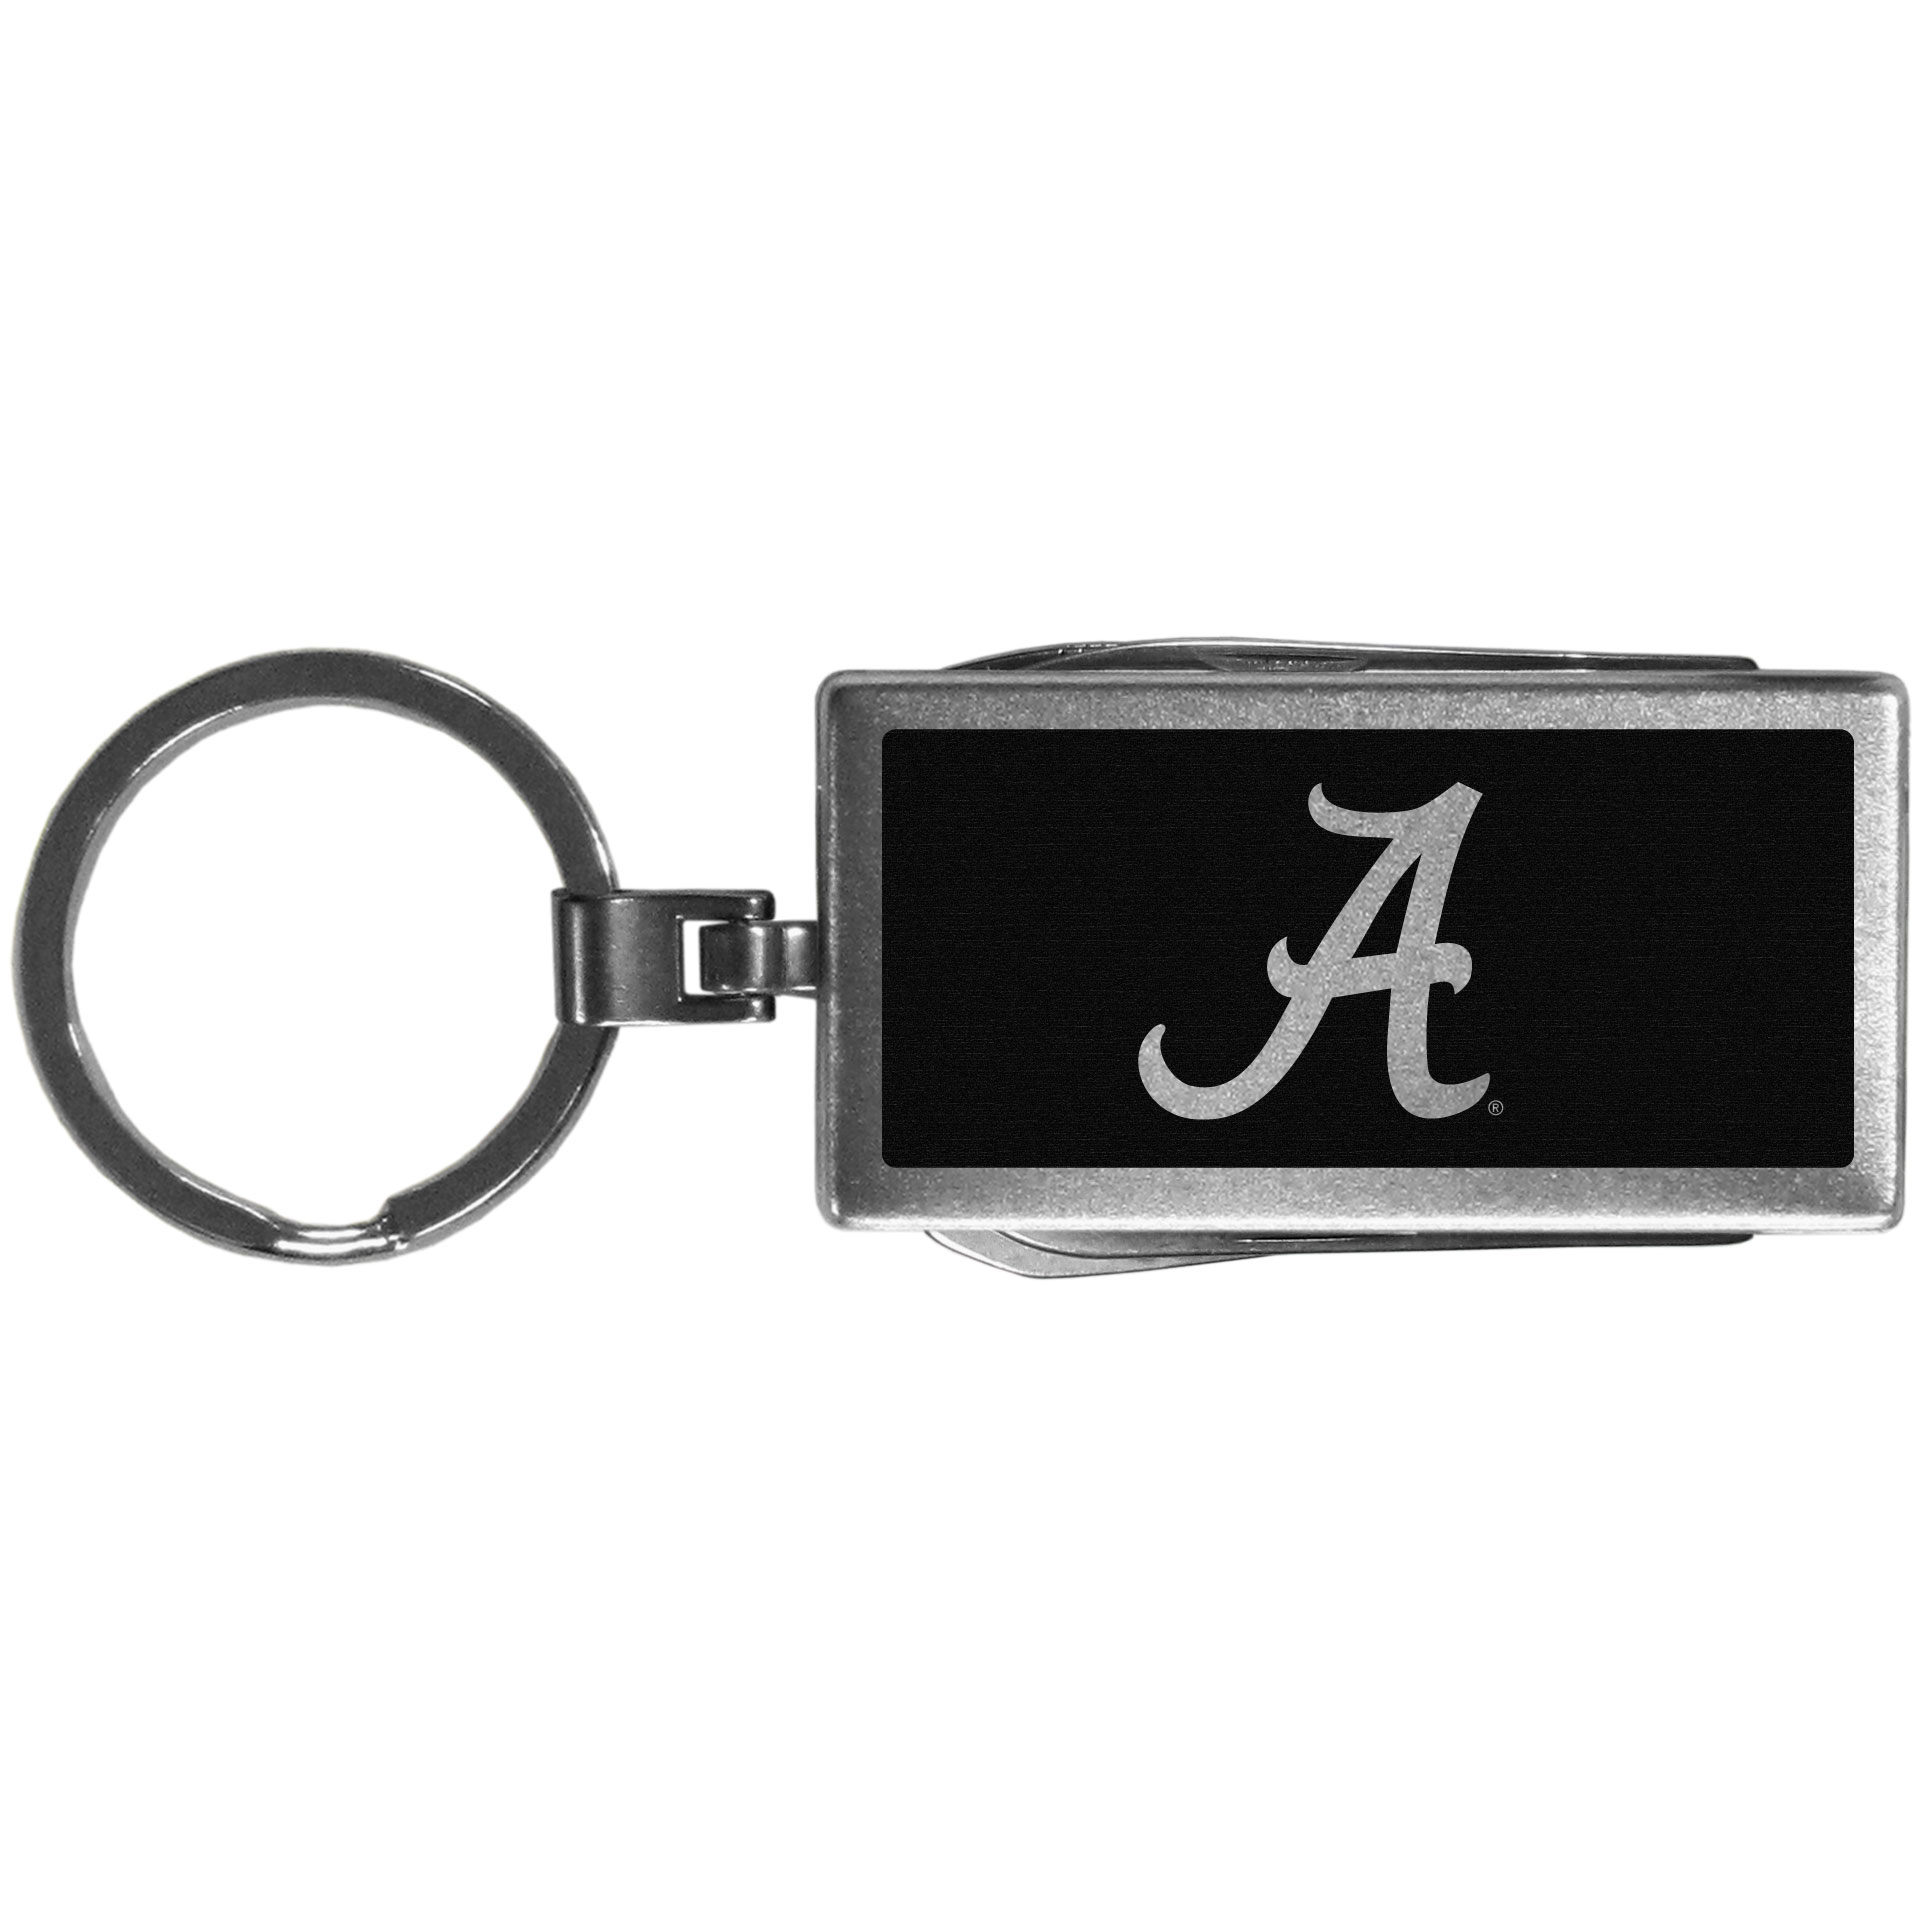 Alabama Crimson Tide Multi-tool Key Chain, Black - Be the hero at the tailgate, camping, or on a Friday night with your Alabama Crimson Tide Multi-Tool Keychain which comes complete with bottle opener, scissors, knife, nail file and screw driver. Be it opening a package or a beverage Siskiyou's Multi-Tool Keychain goes wherever your keys do. The keychain hangs at 4 inches long when closed.